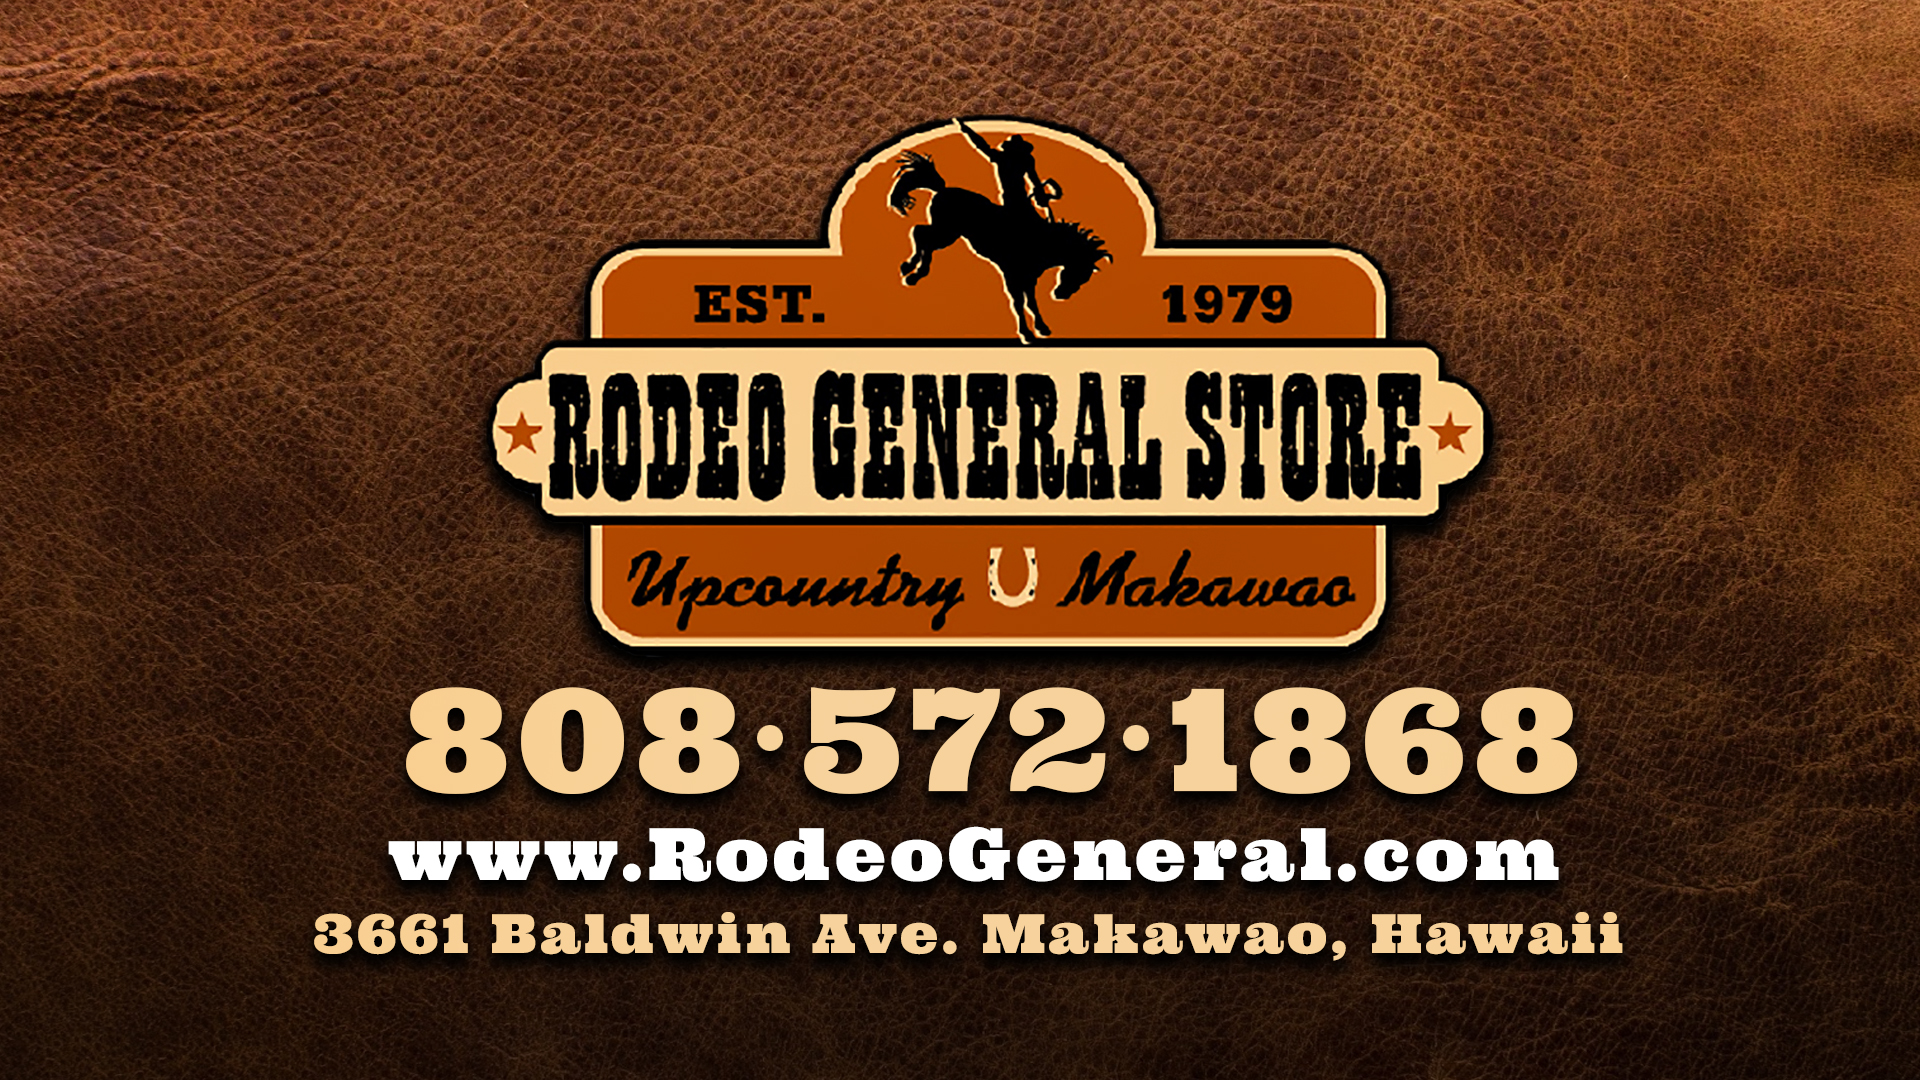 Rodeo General Store Maui